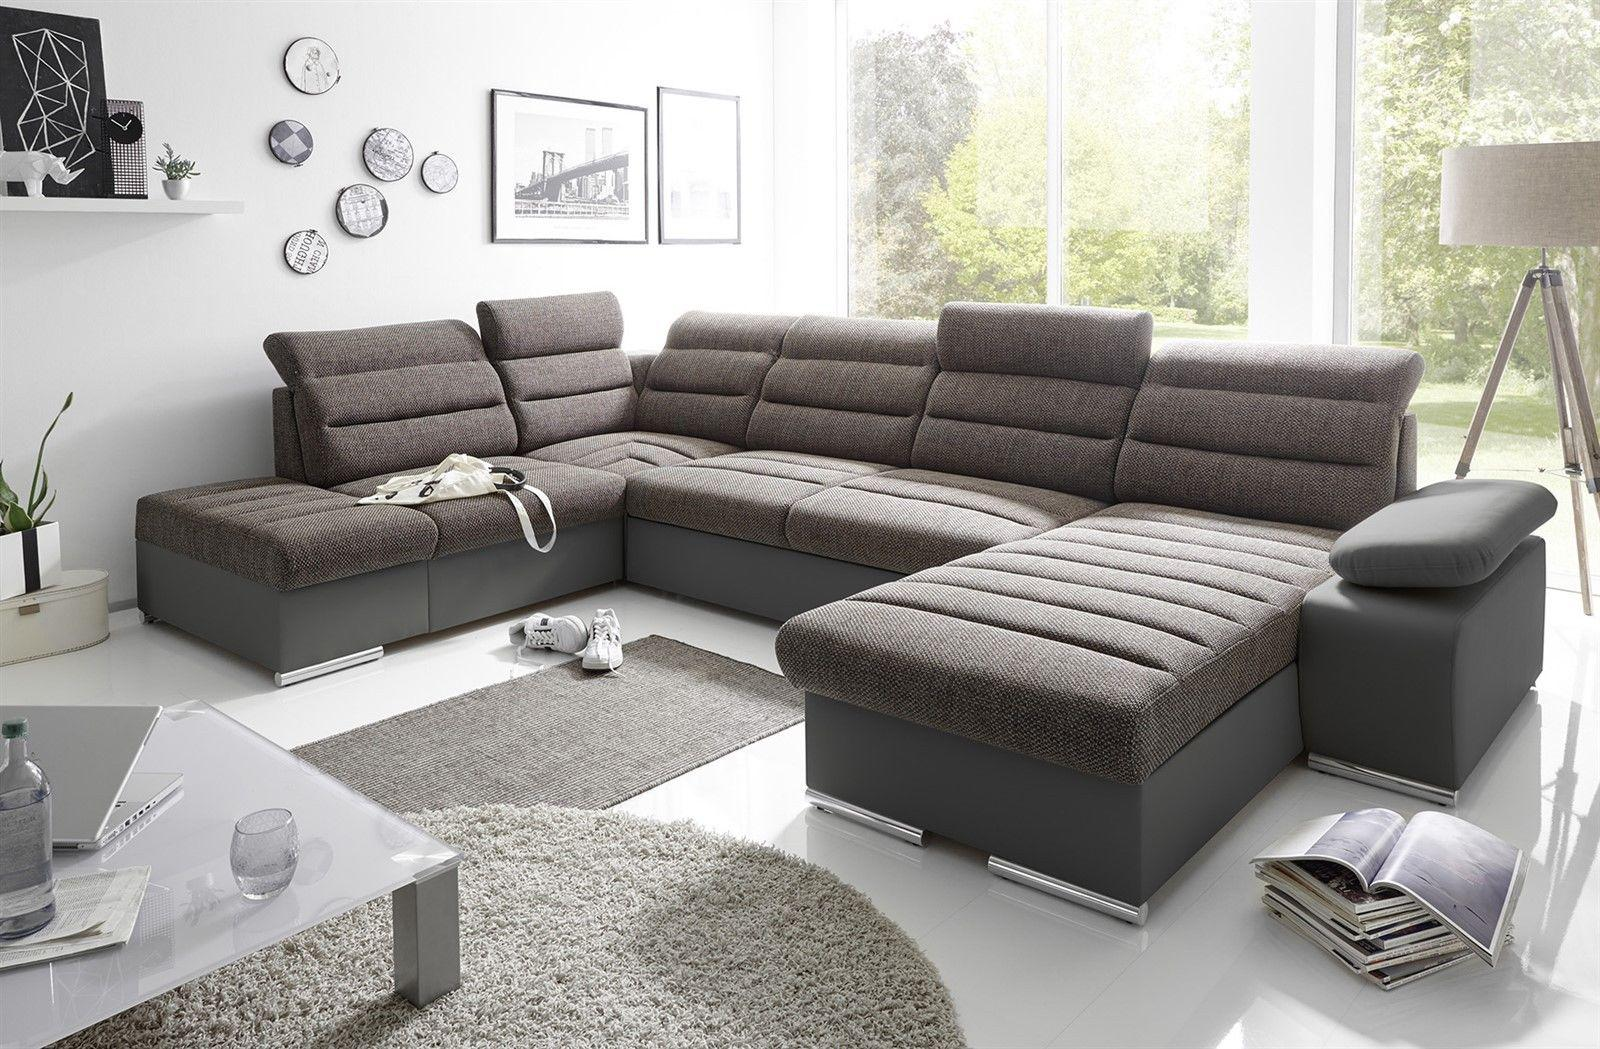 Otto sofas angebote elegant couch with otto sofas for Sofa angebote